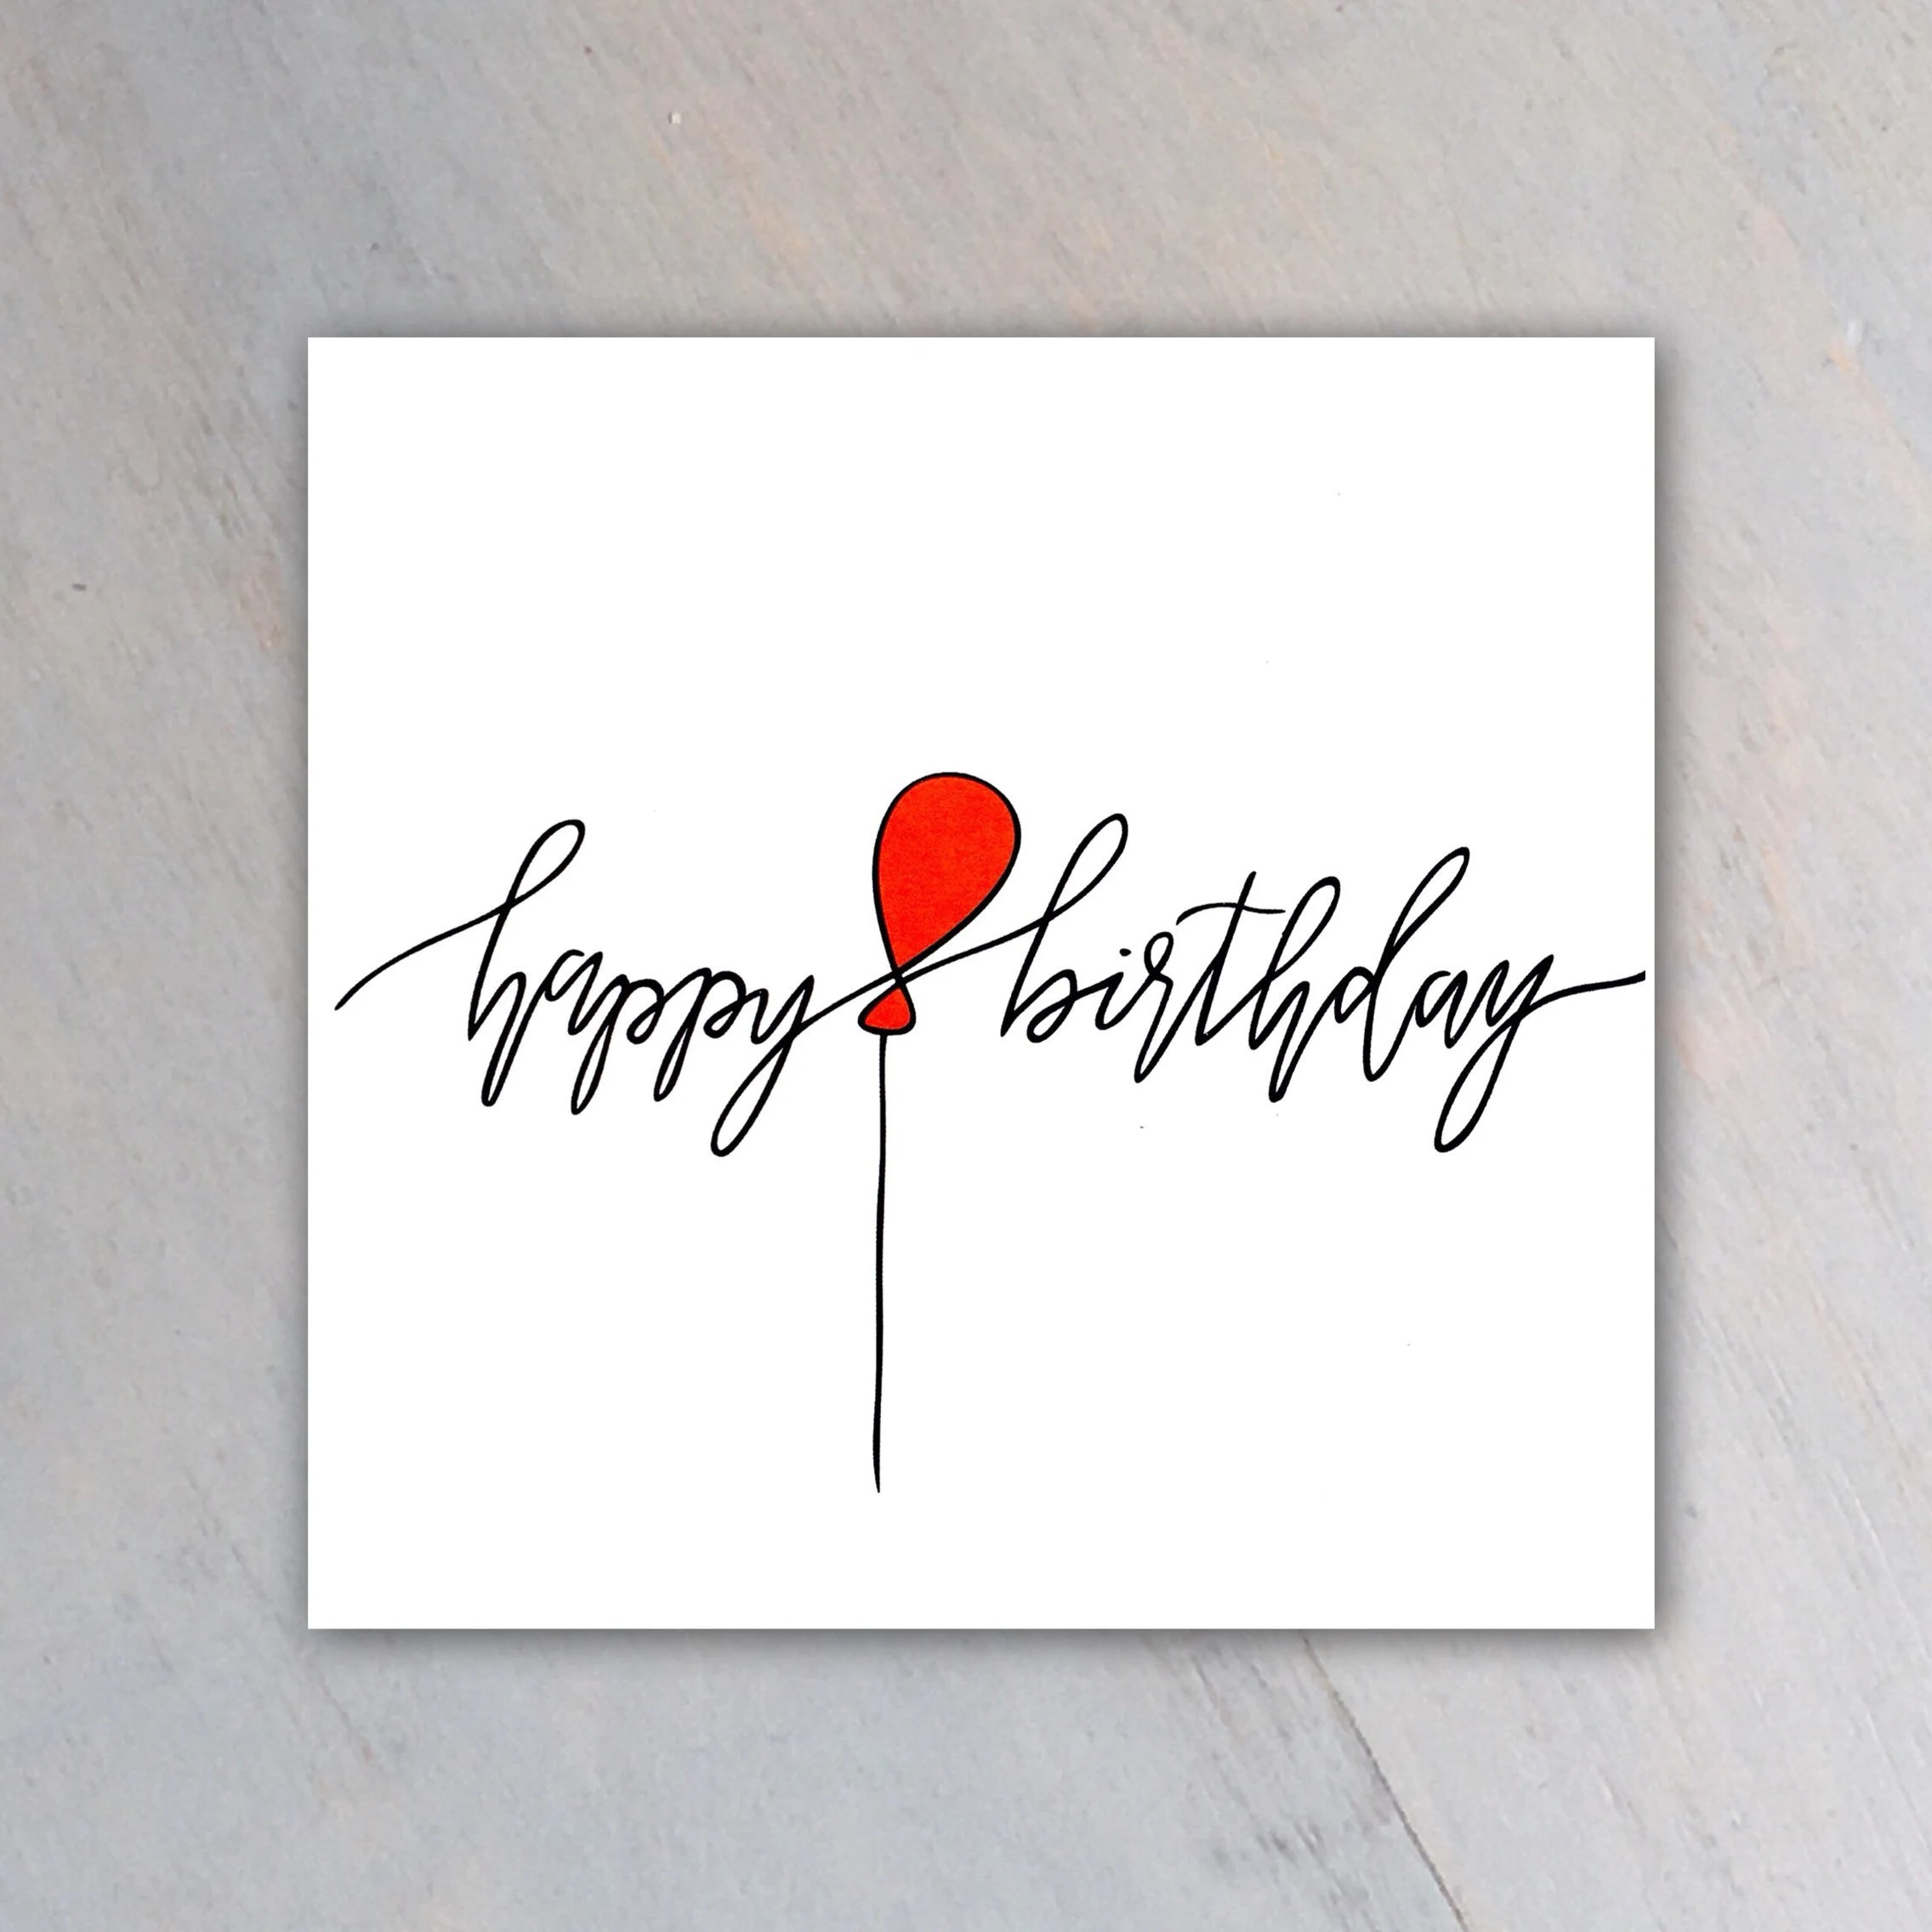 Happy Birthday Card With Red Balloon And Cursive Lettering Etsy